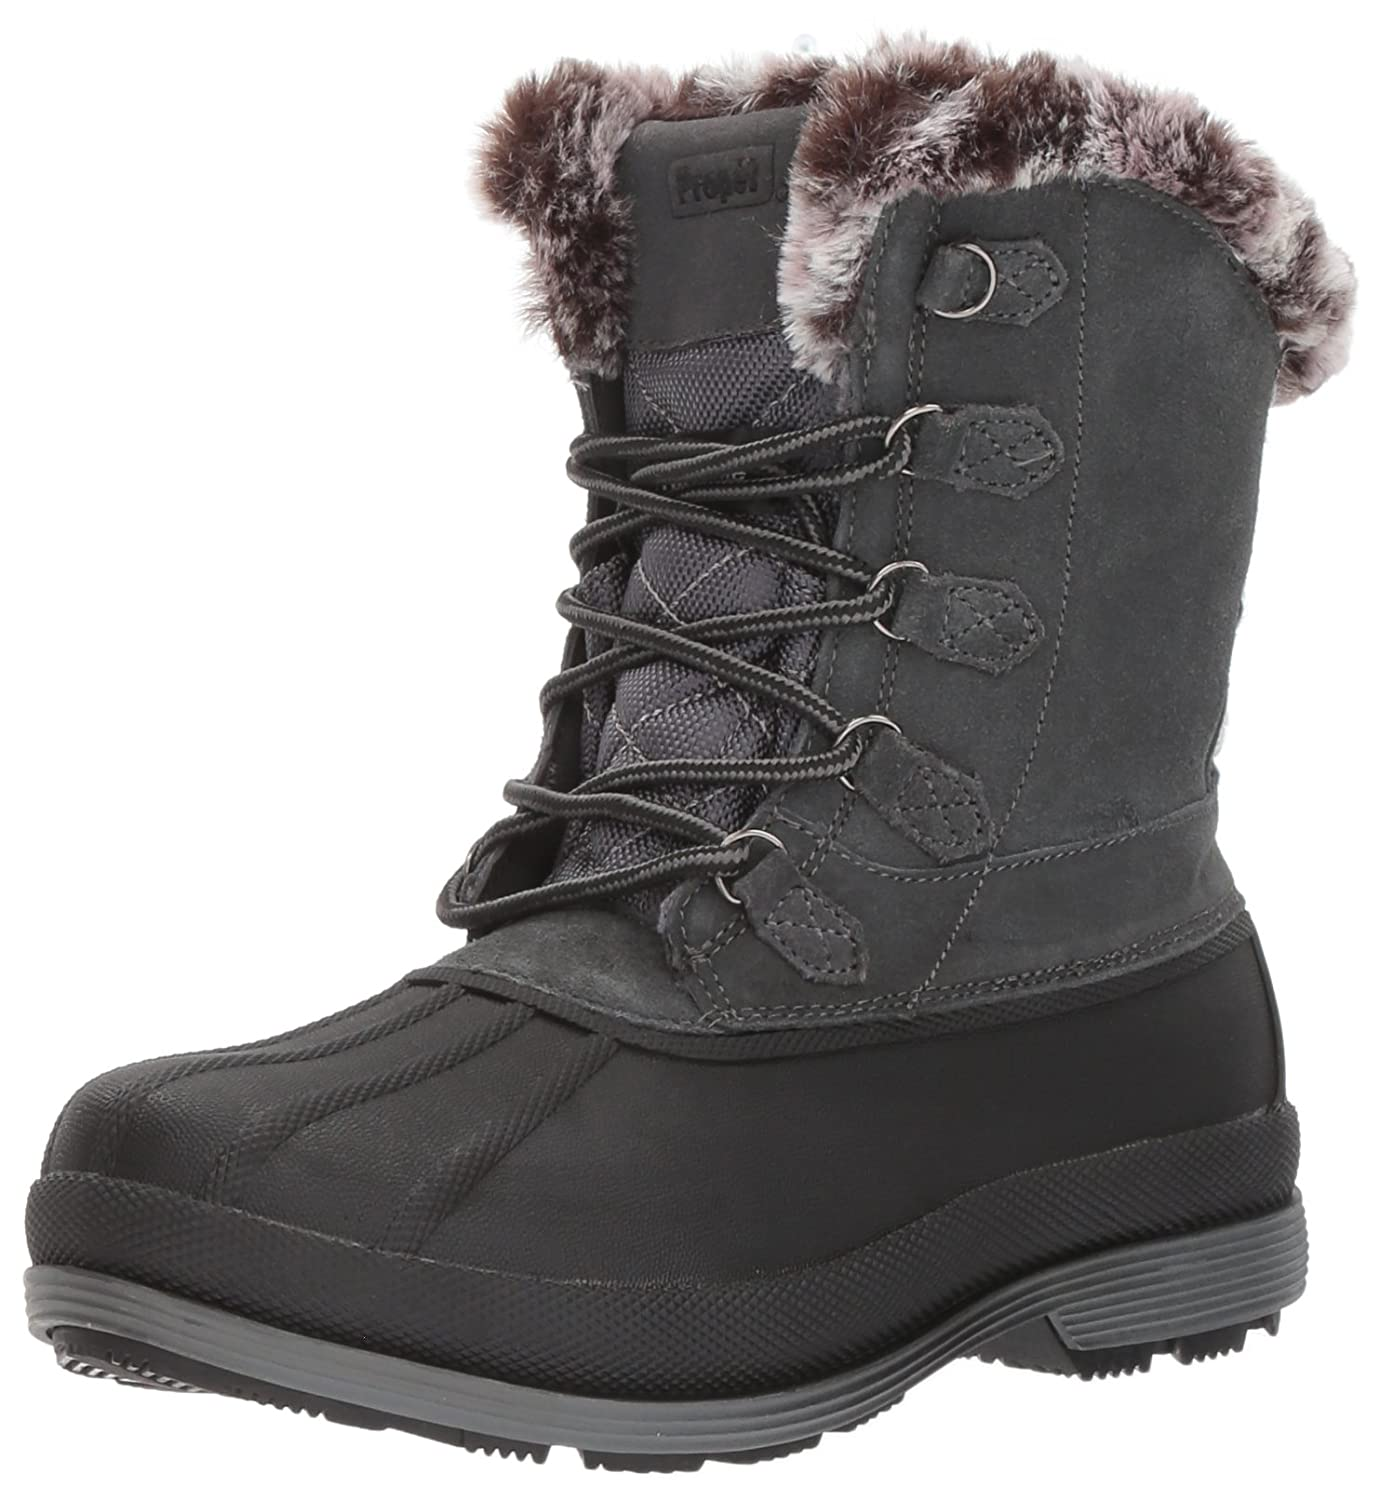 Propet Women's Lumi Tall Lace Snow Boot B01N9RNH5T 8.5 4E US|Grey